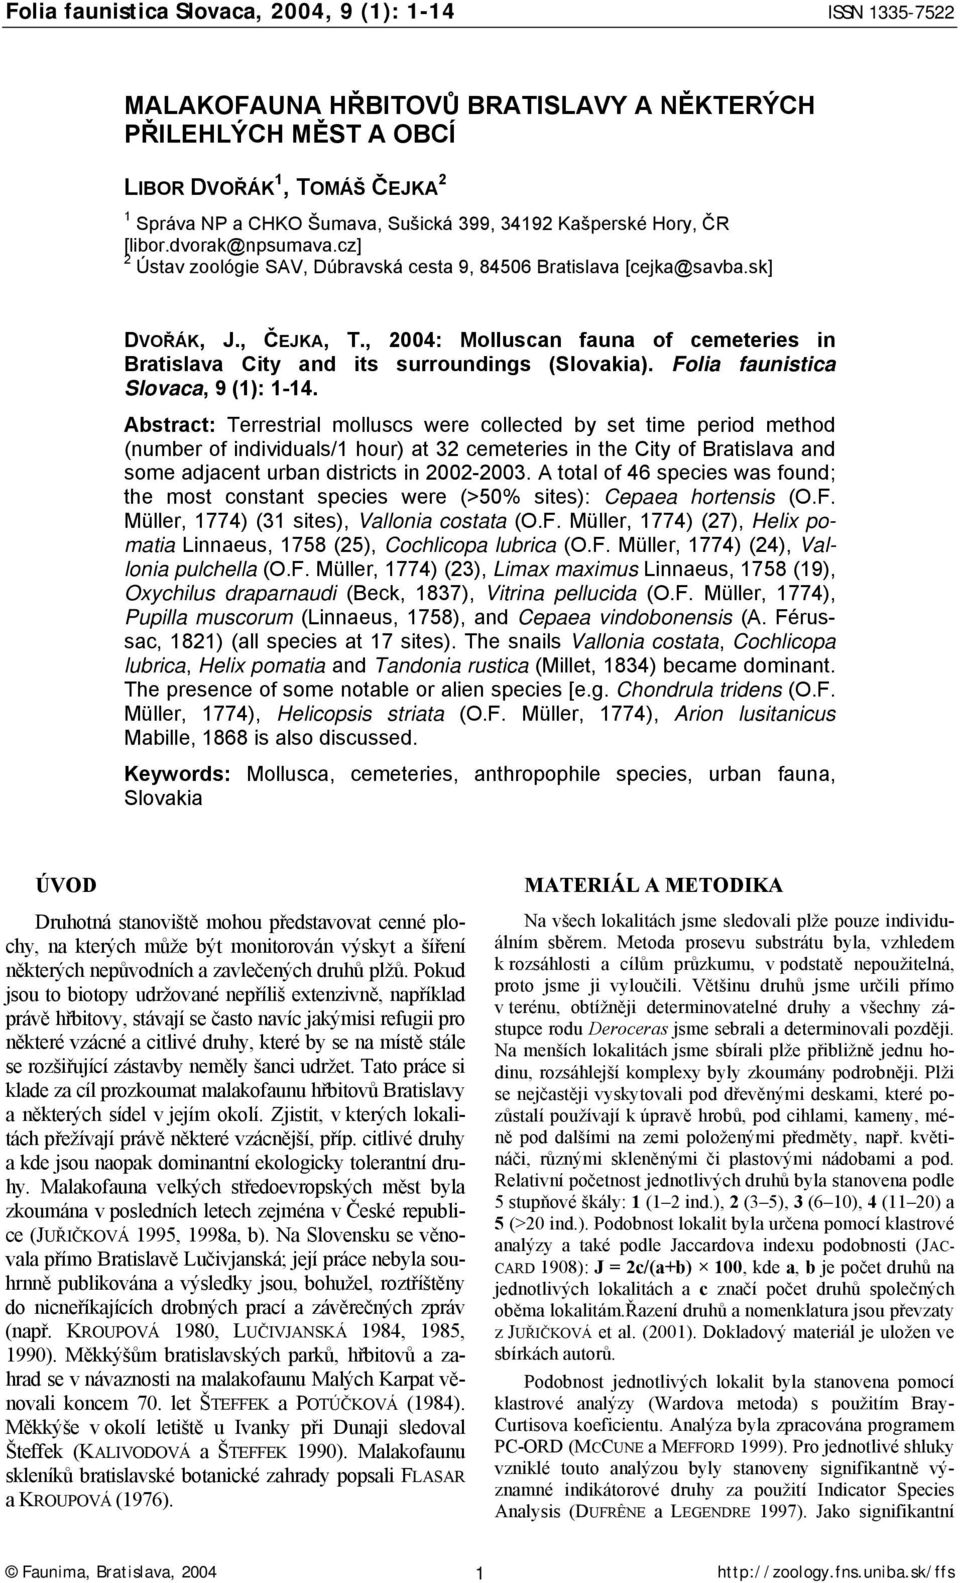 , 2004: Molluscan fauna of cemeteries in Bratislava City and its surroundings (Slovakia). Folia faunistica Slovaca, 9 (1): 1-14.